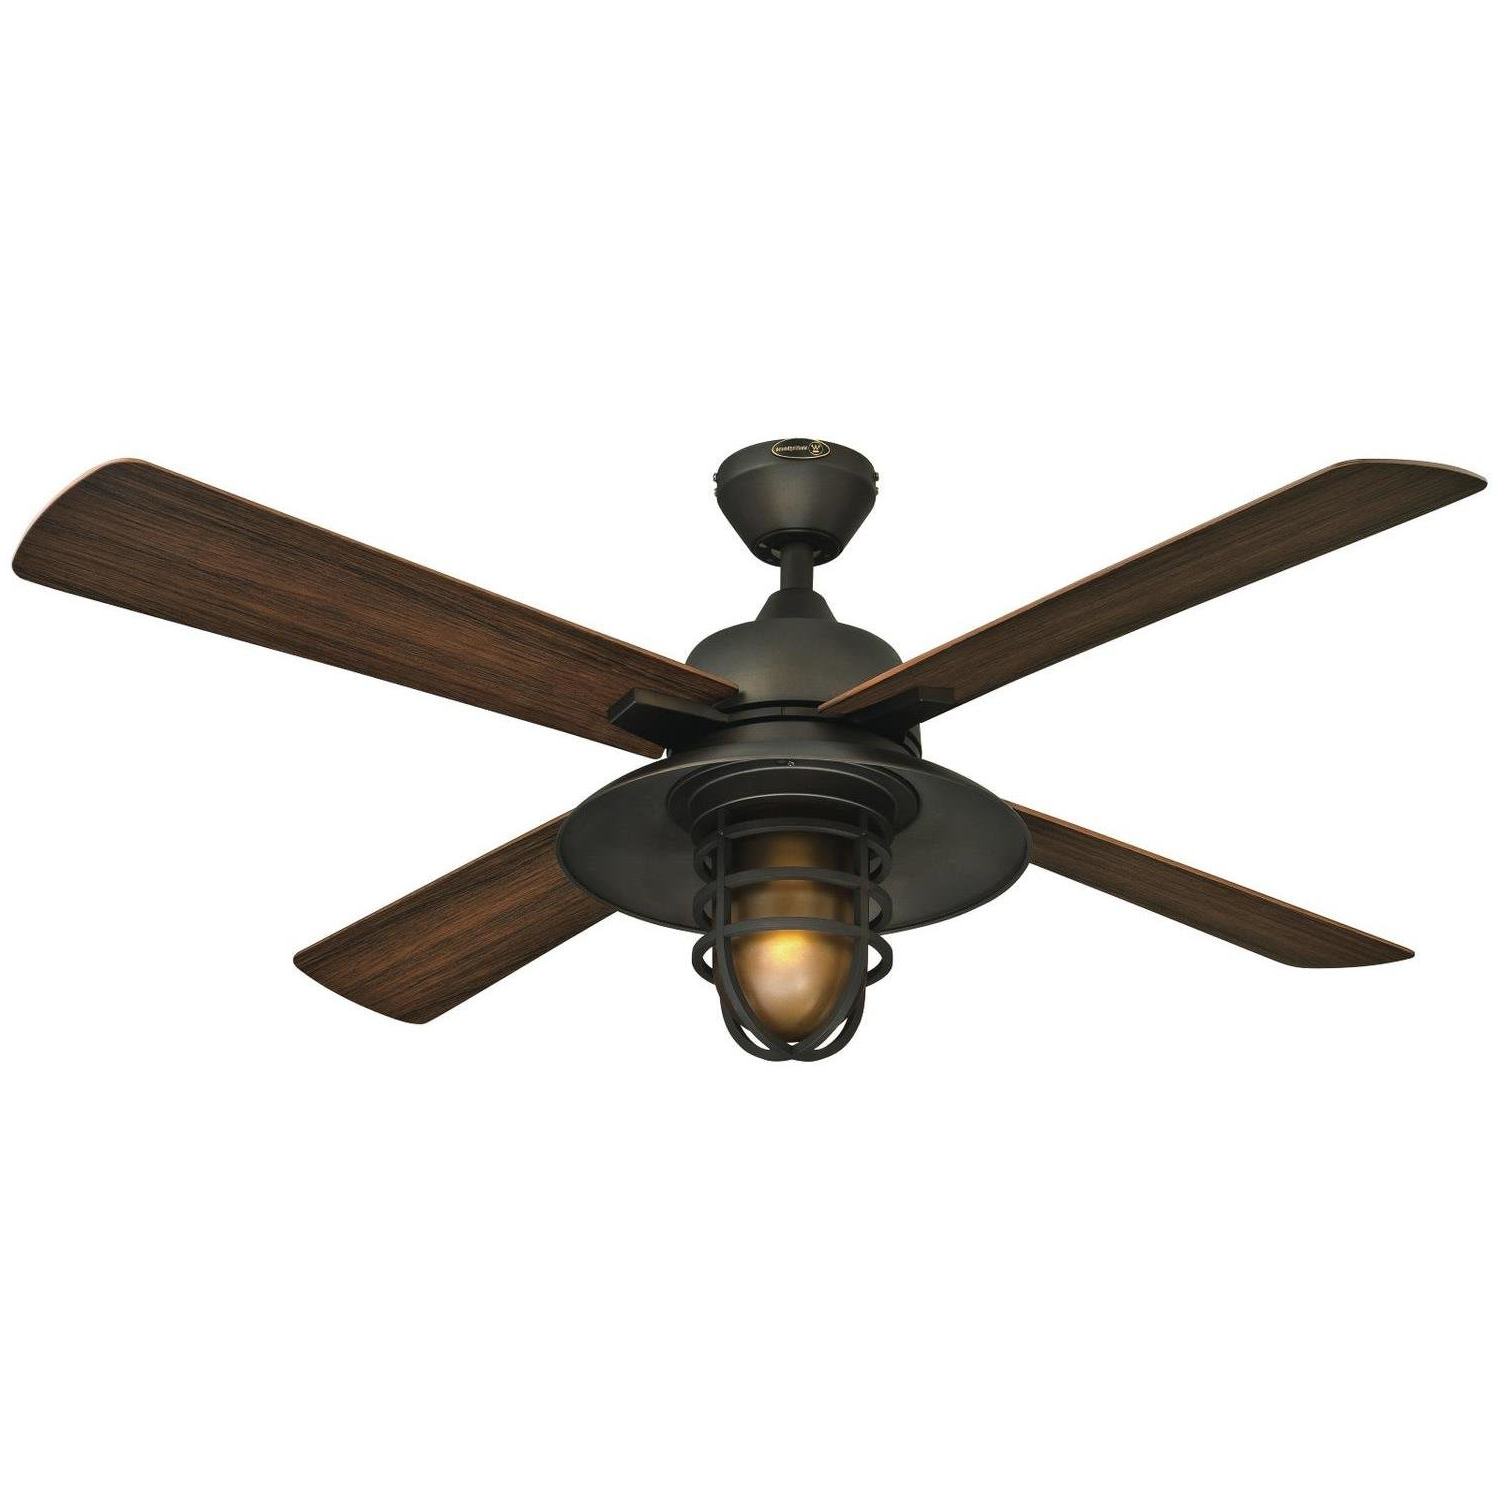 """52"""" Barcus 4 Blade Ceiling Fan, Light Kit Included Within Best And Newest Wilburton 3 Blade Outdoor Ceiling Fans (View 4 of 20)"""